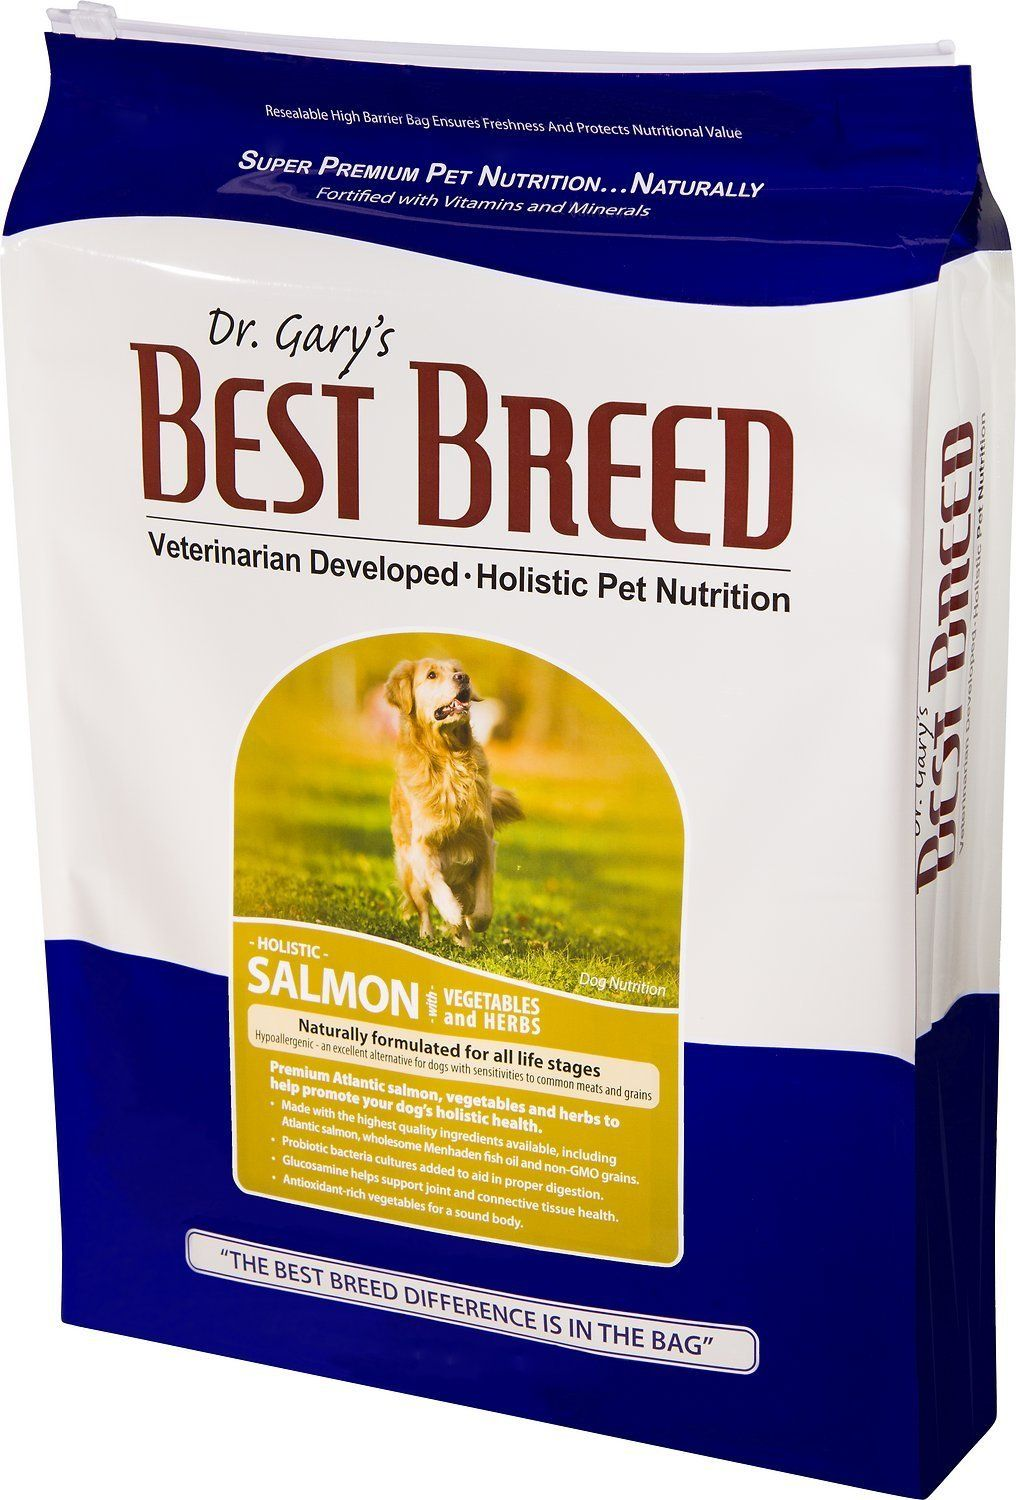 Best breed 531023 dog salmon with vegetables and herbs44